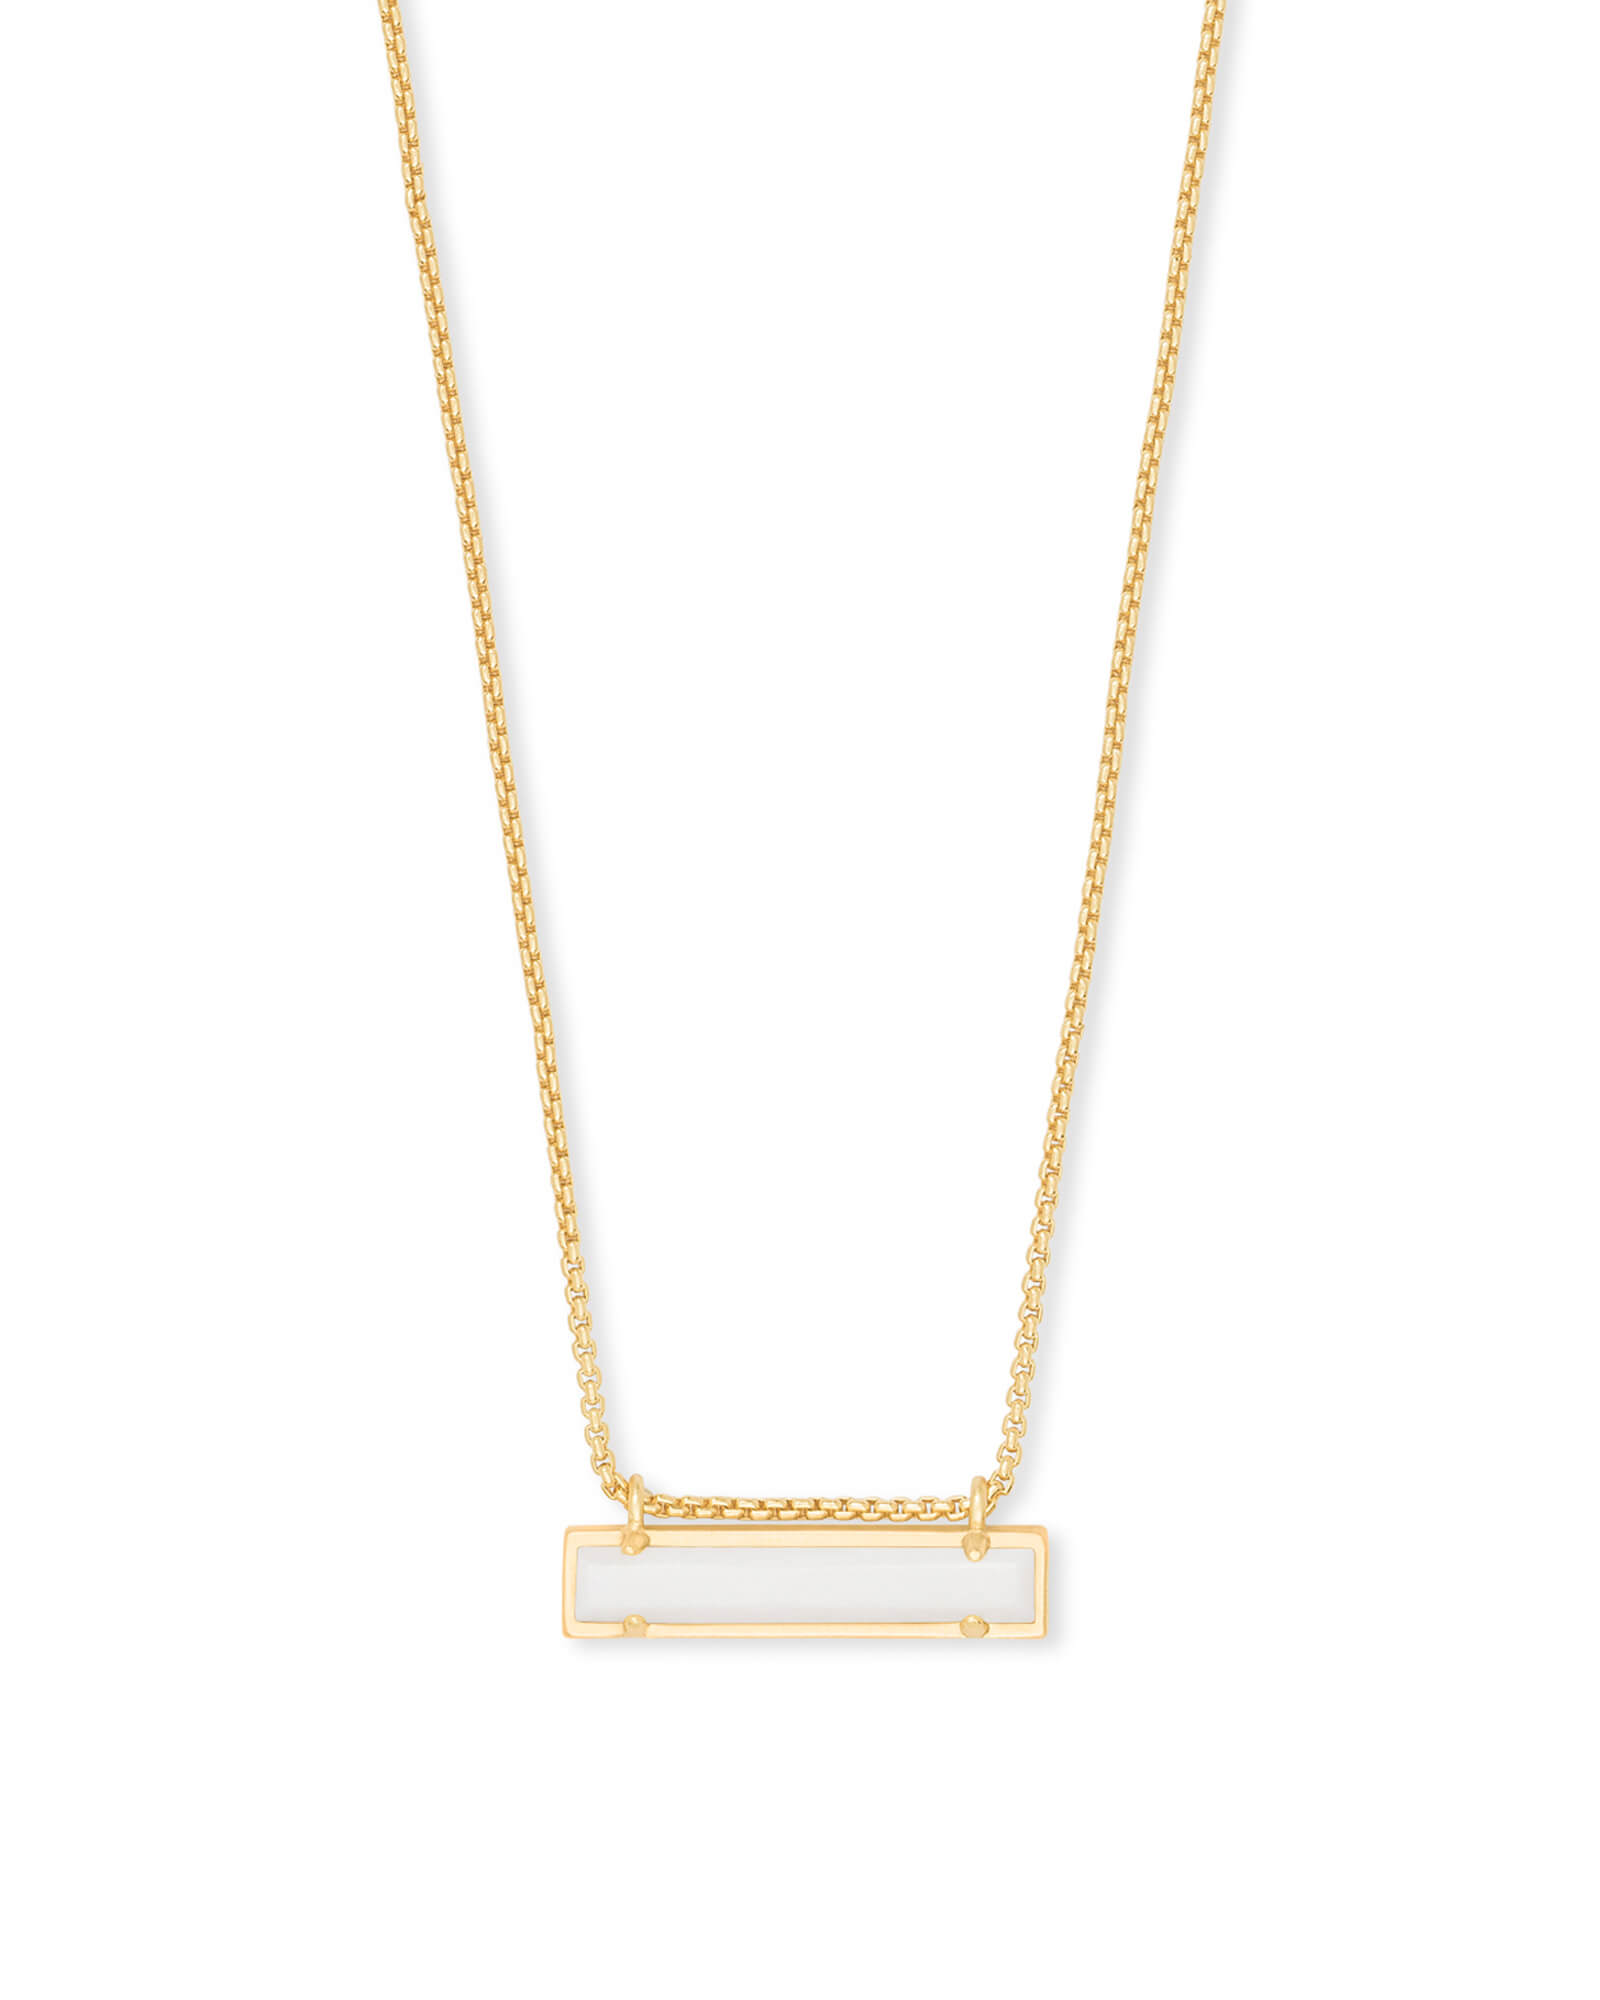 Leanor Gold Pendant Necklace in White Pearl